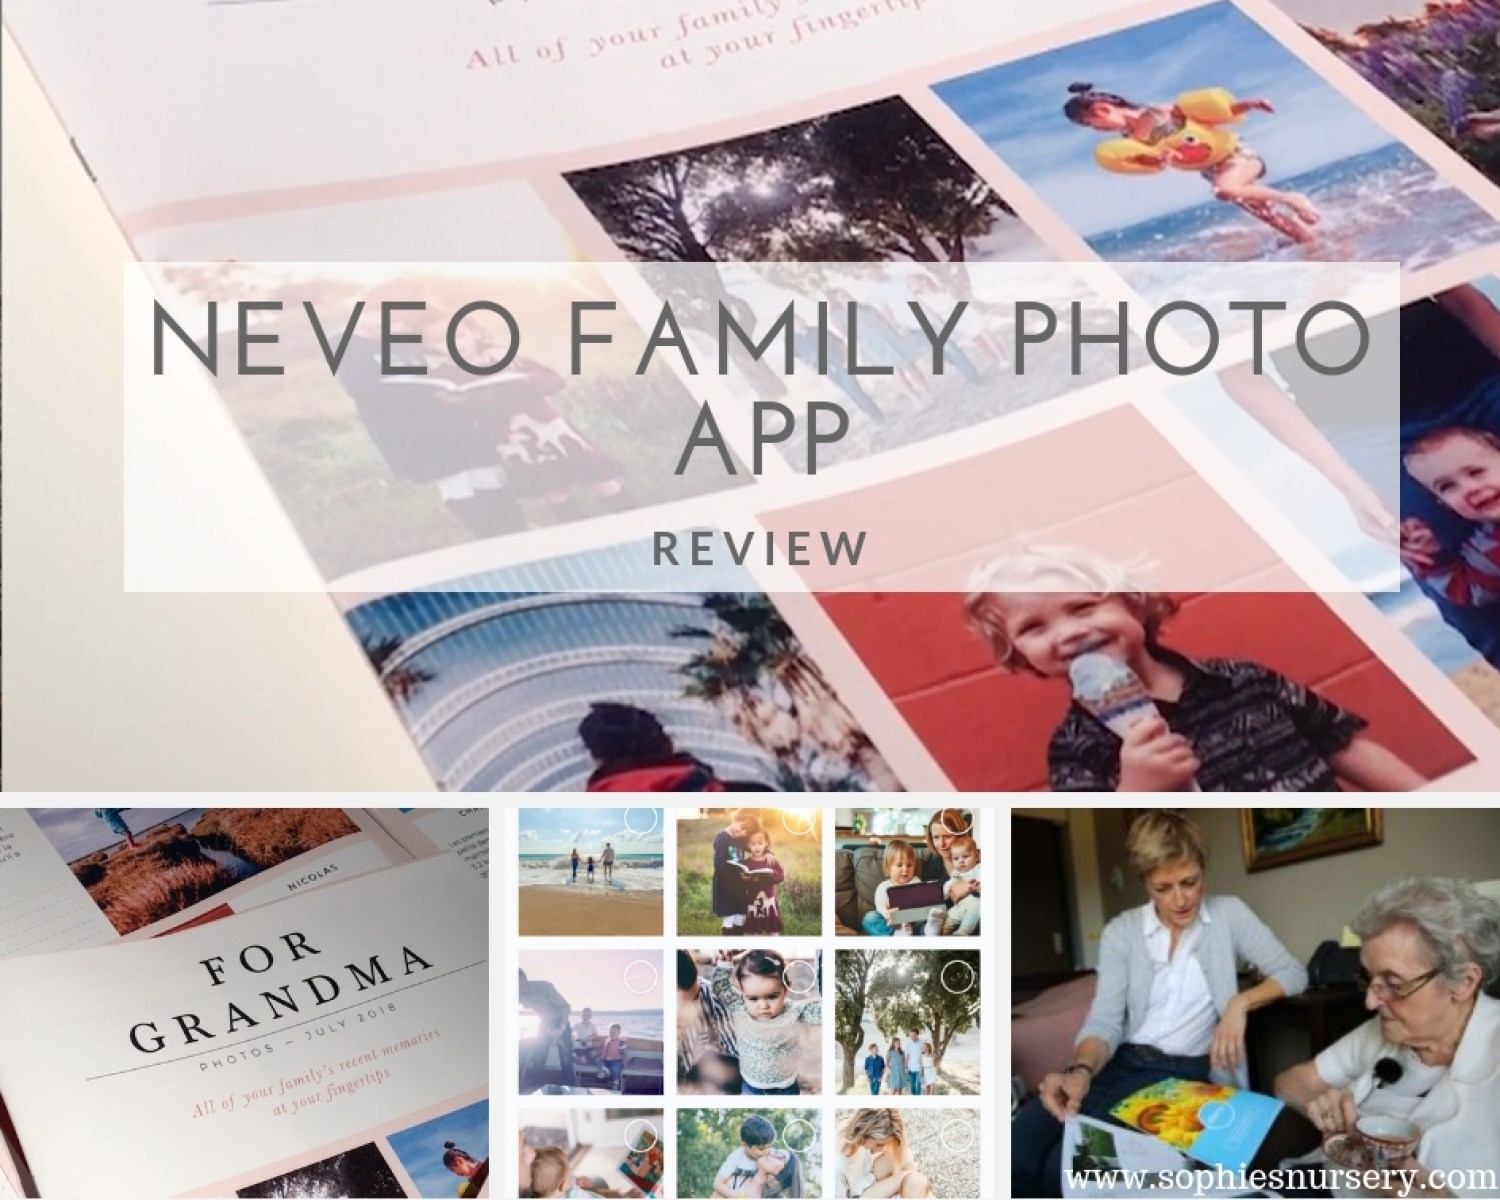 Neveo Family Photo App: Sharing Your Best Moments - Sophie's Nursery